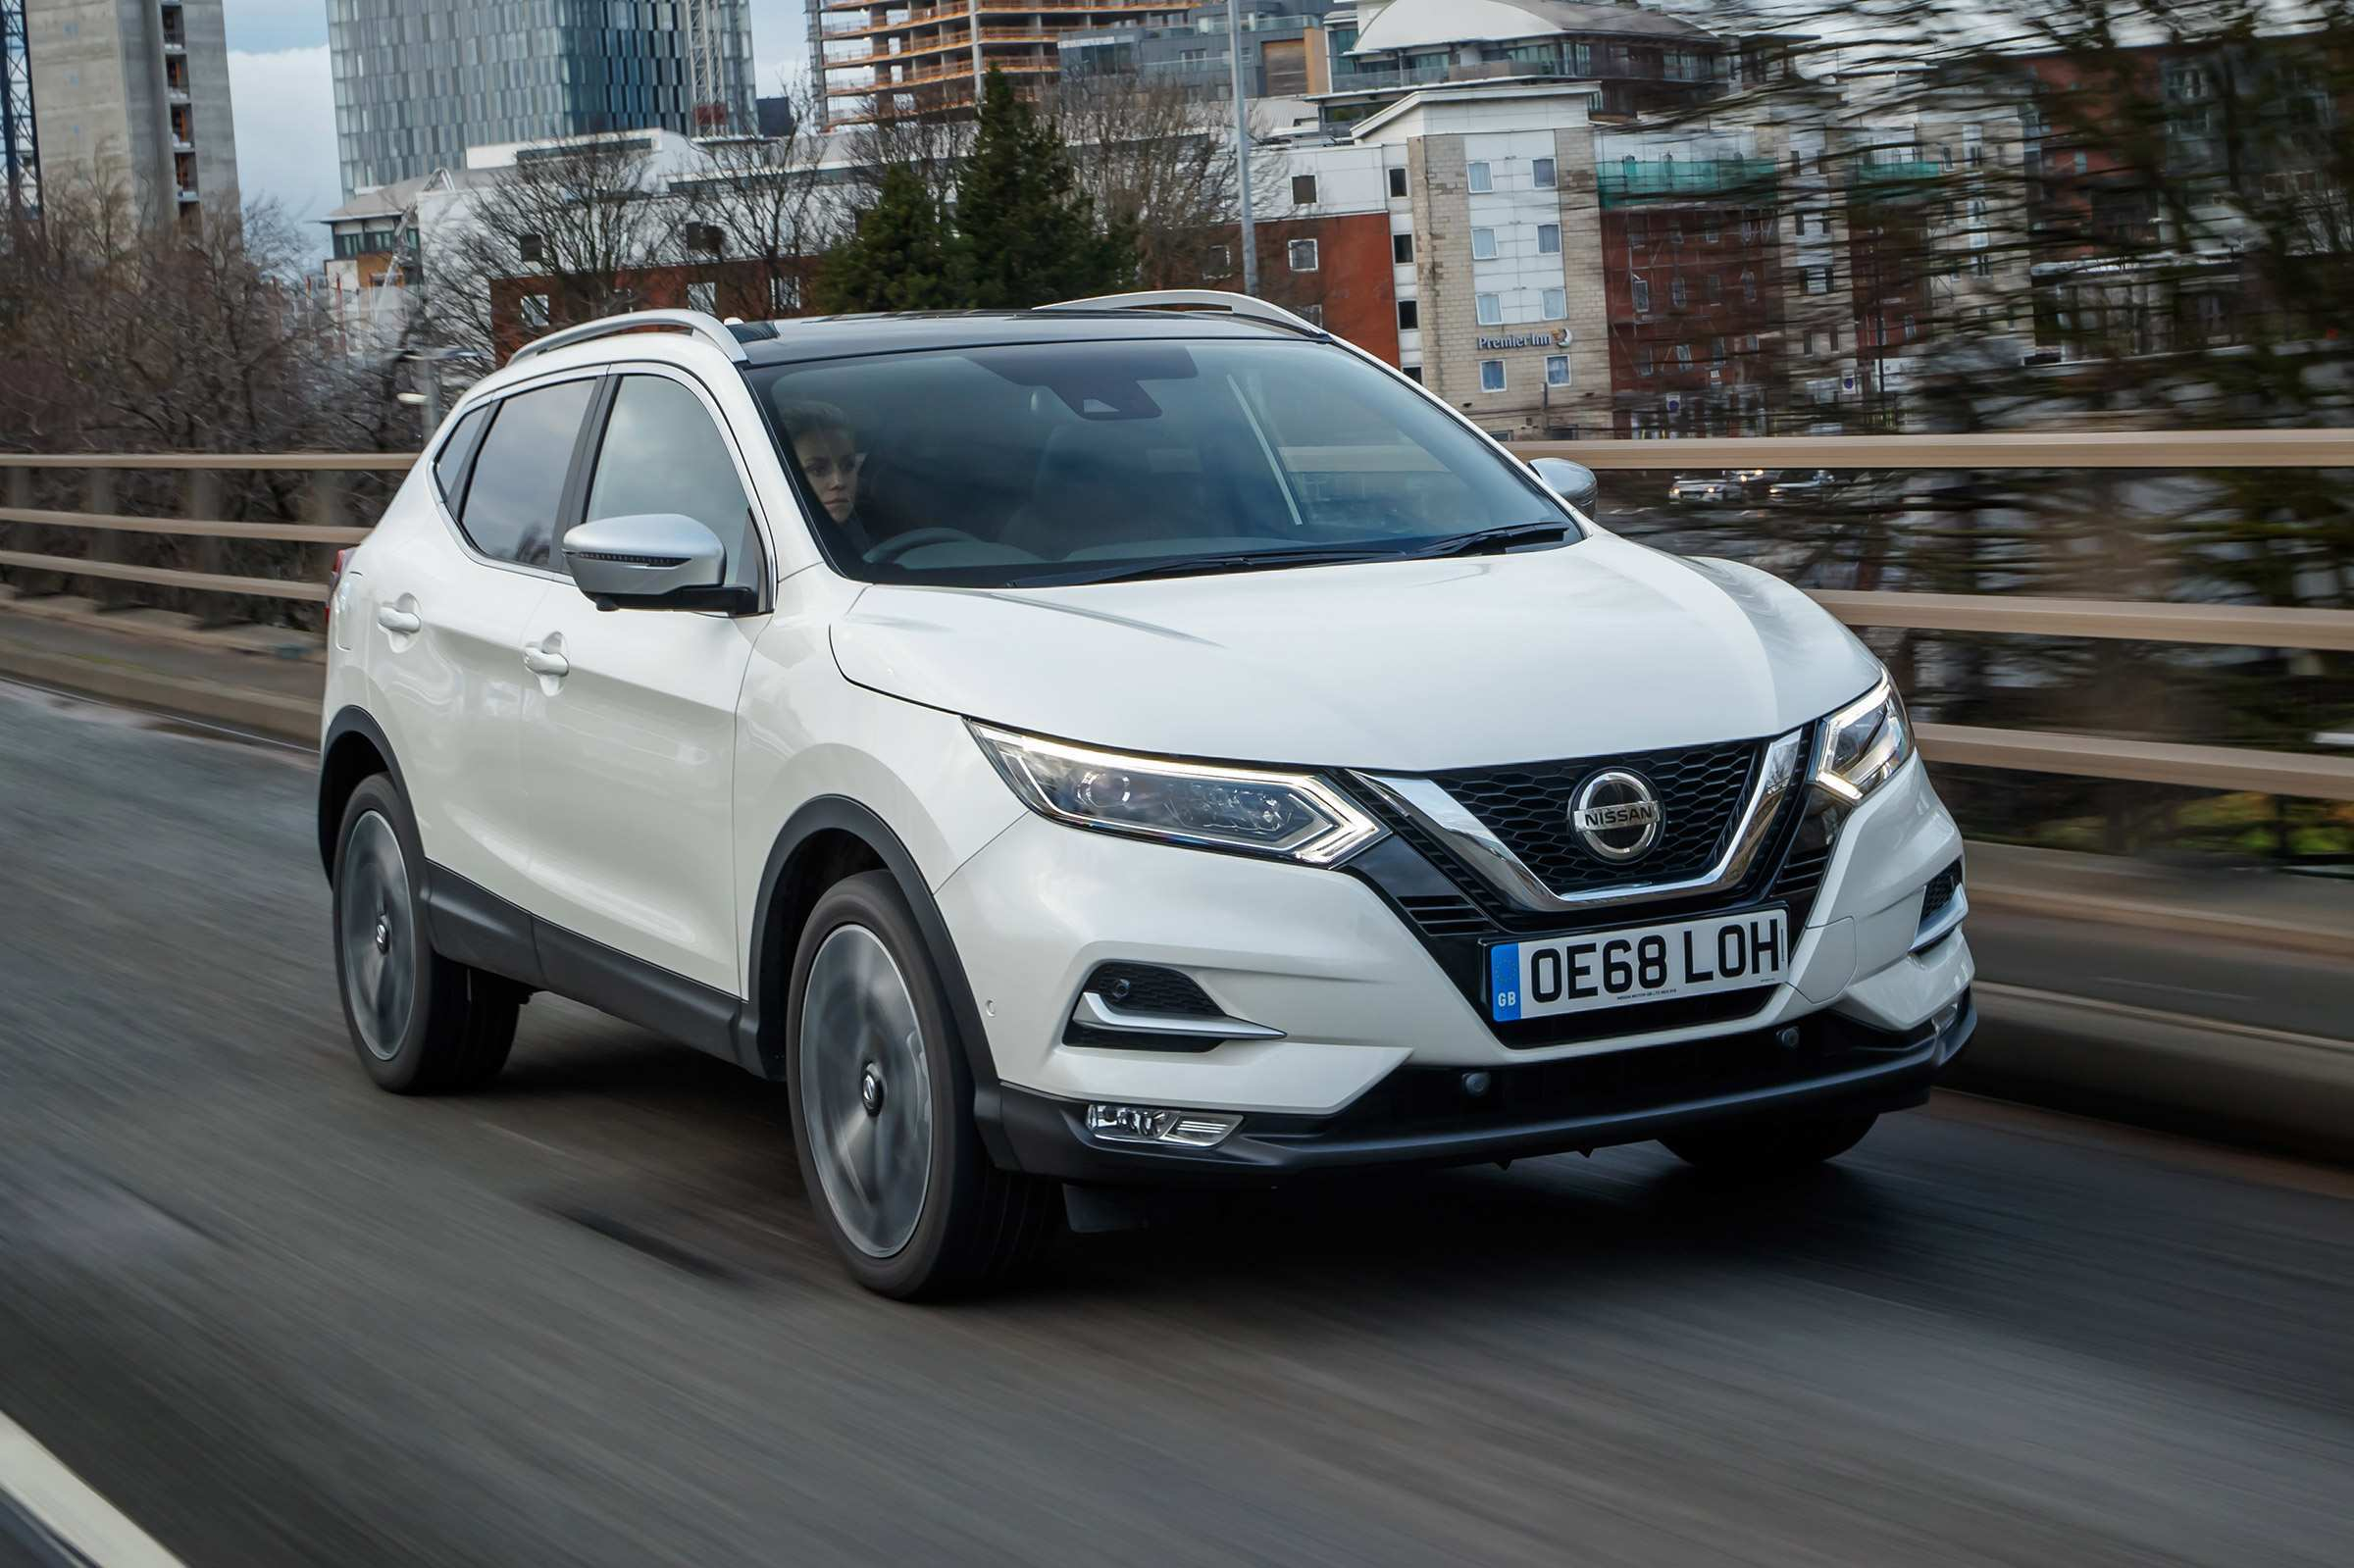 16 Great New Nissan Qashqai 2019 Youtube New Engine Picture with New Nissan Qashqai 2019 Youtube New Engine